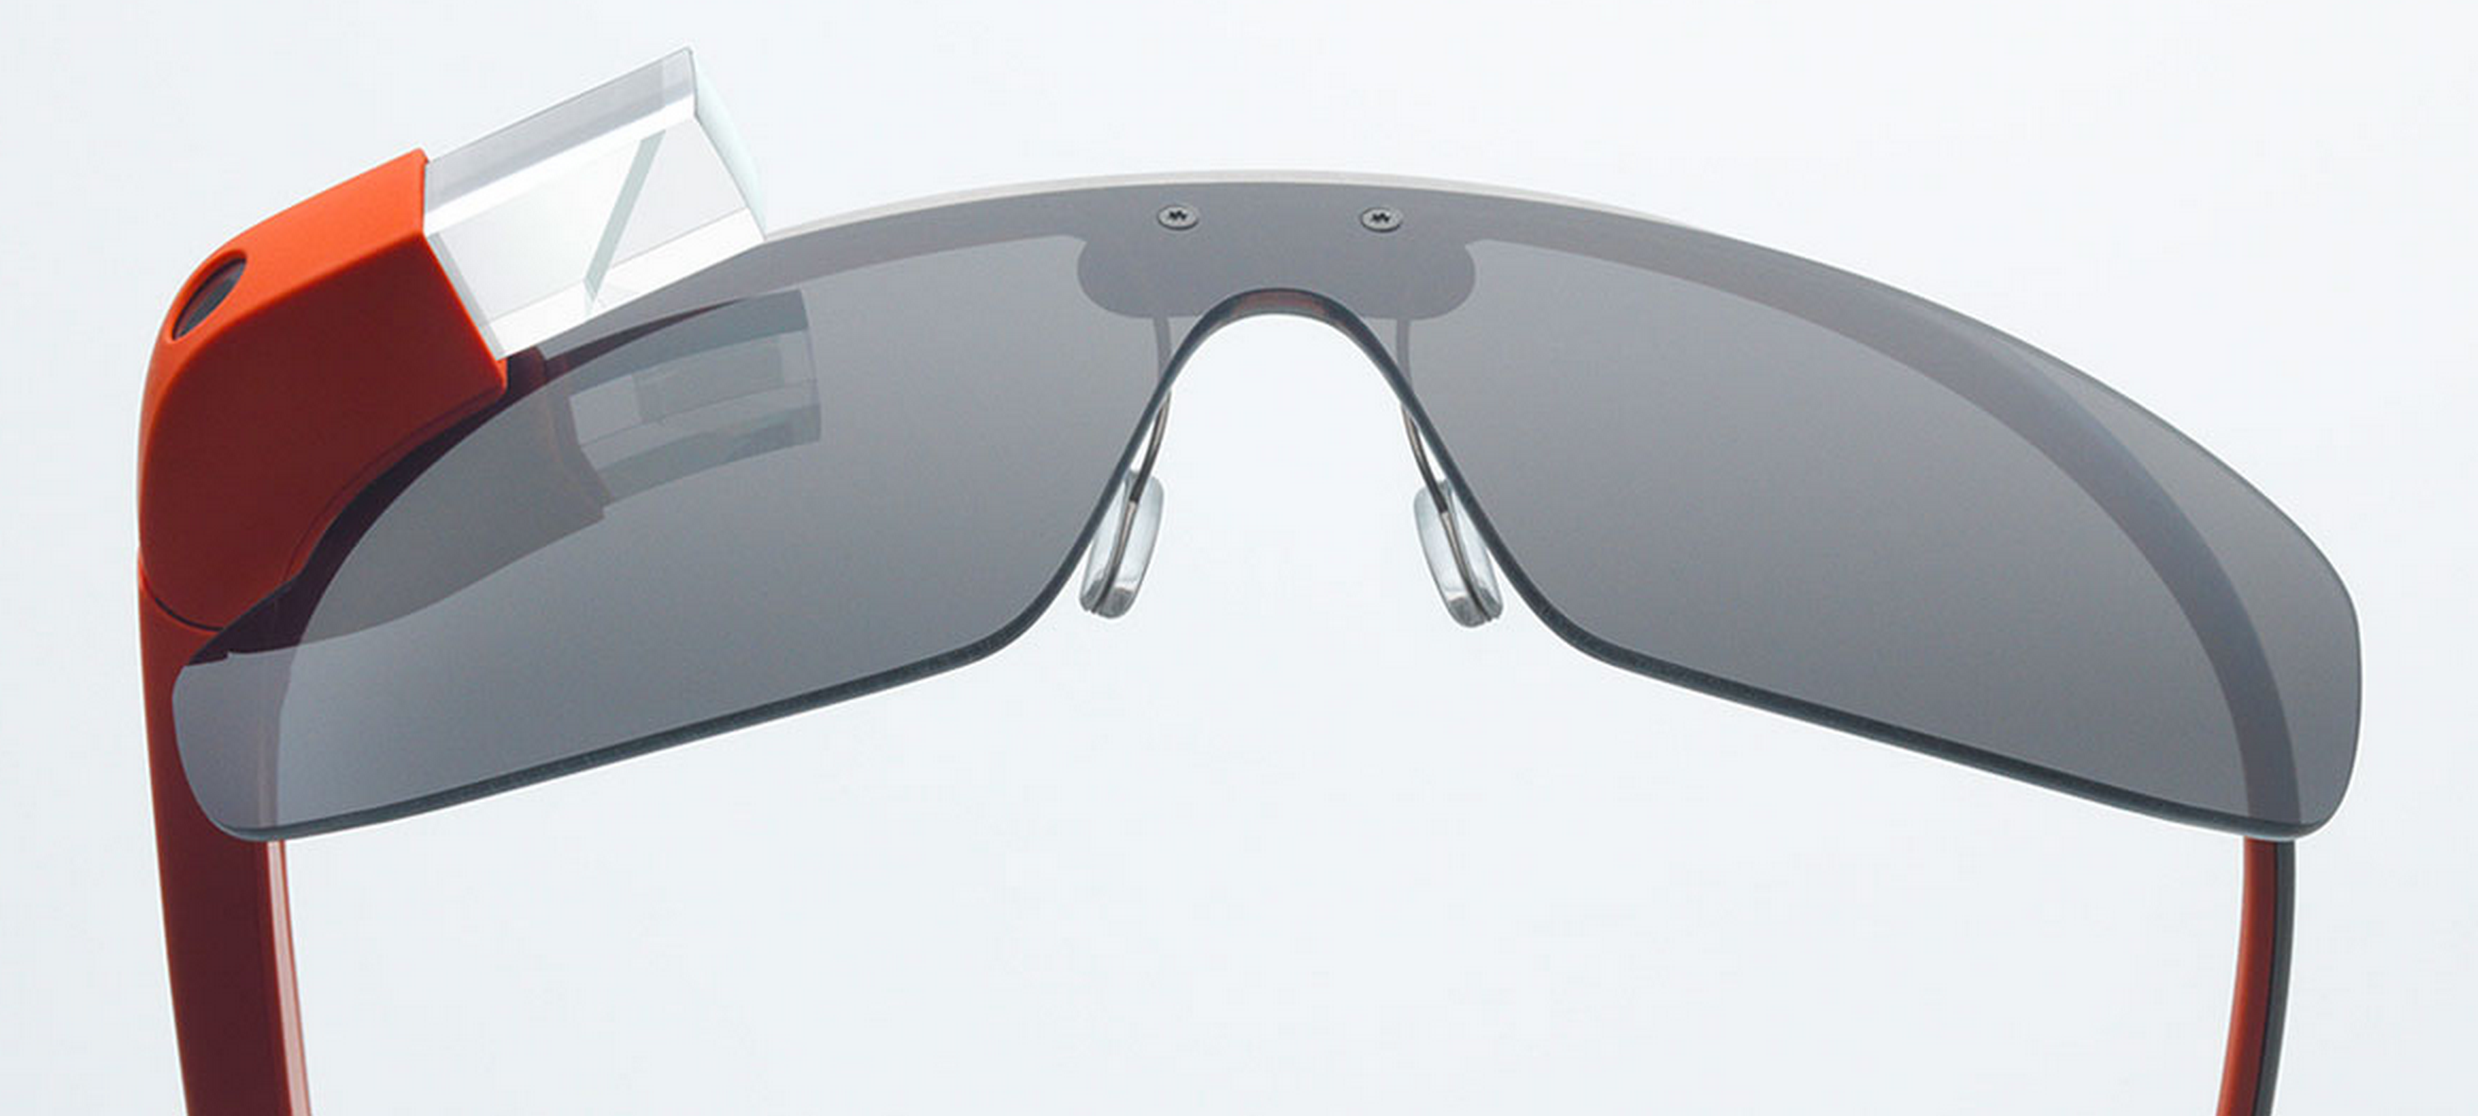 First Steps to Getting Google Glass and Being a Part of Phase Two of the Explorer Program